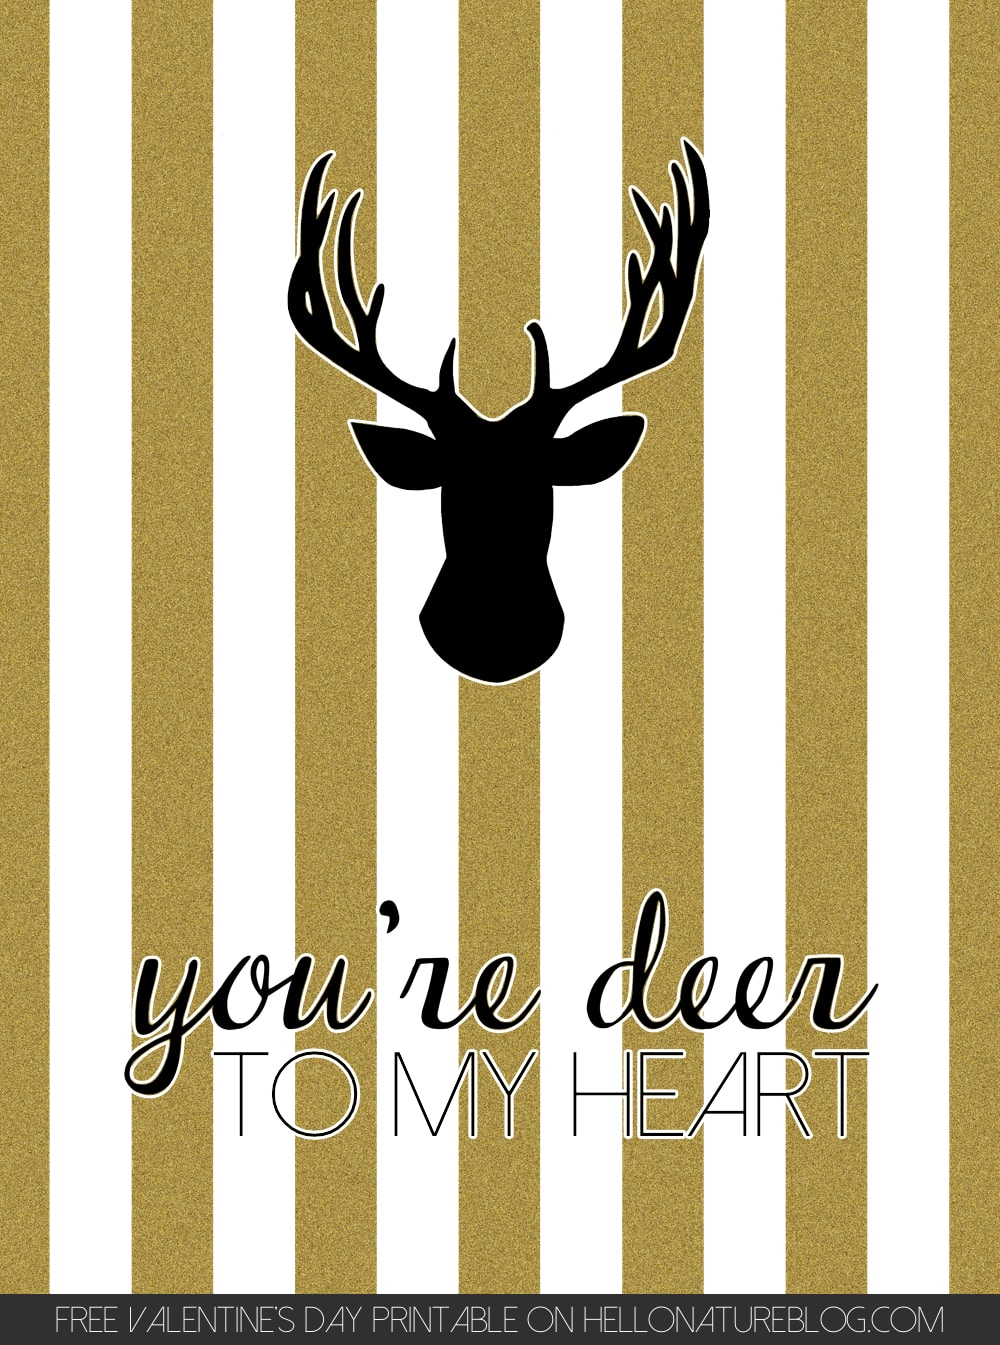 Free You're Deer To My Heart Gold Black and White Valentine's Day Printable